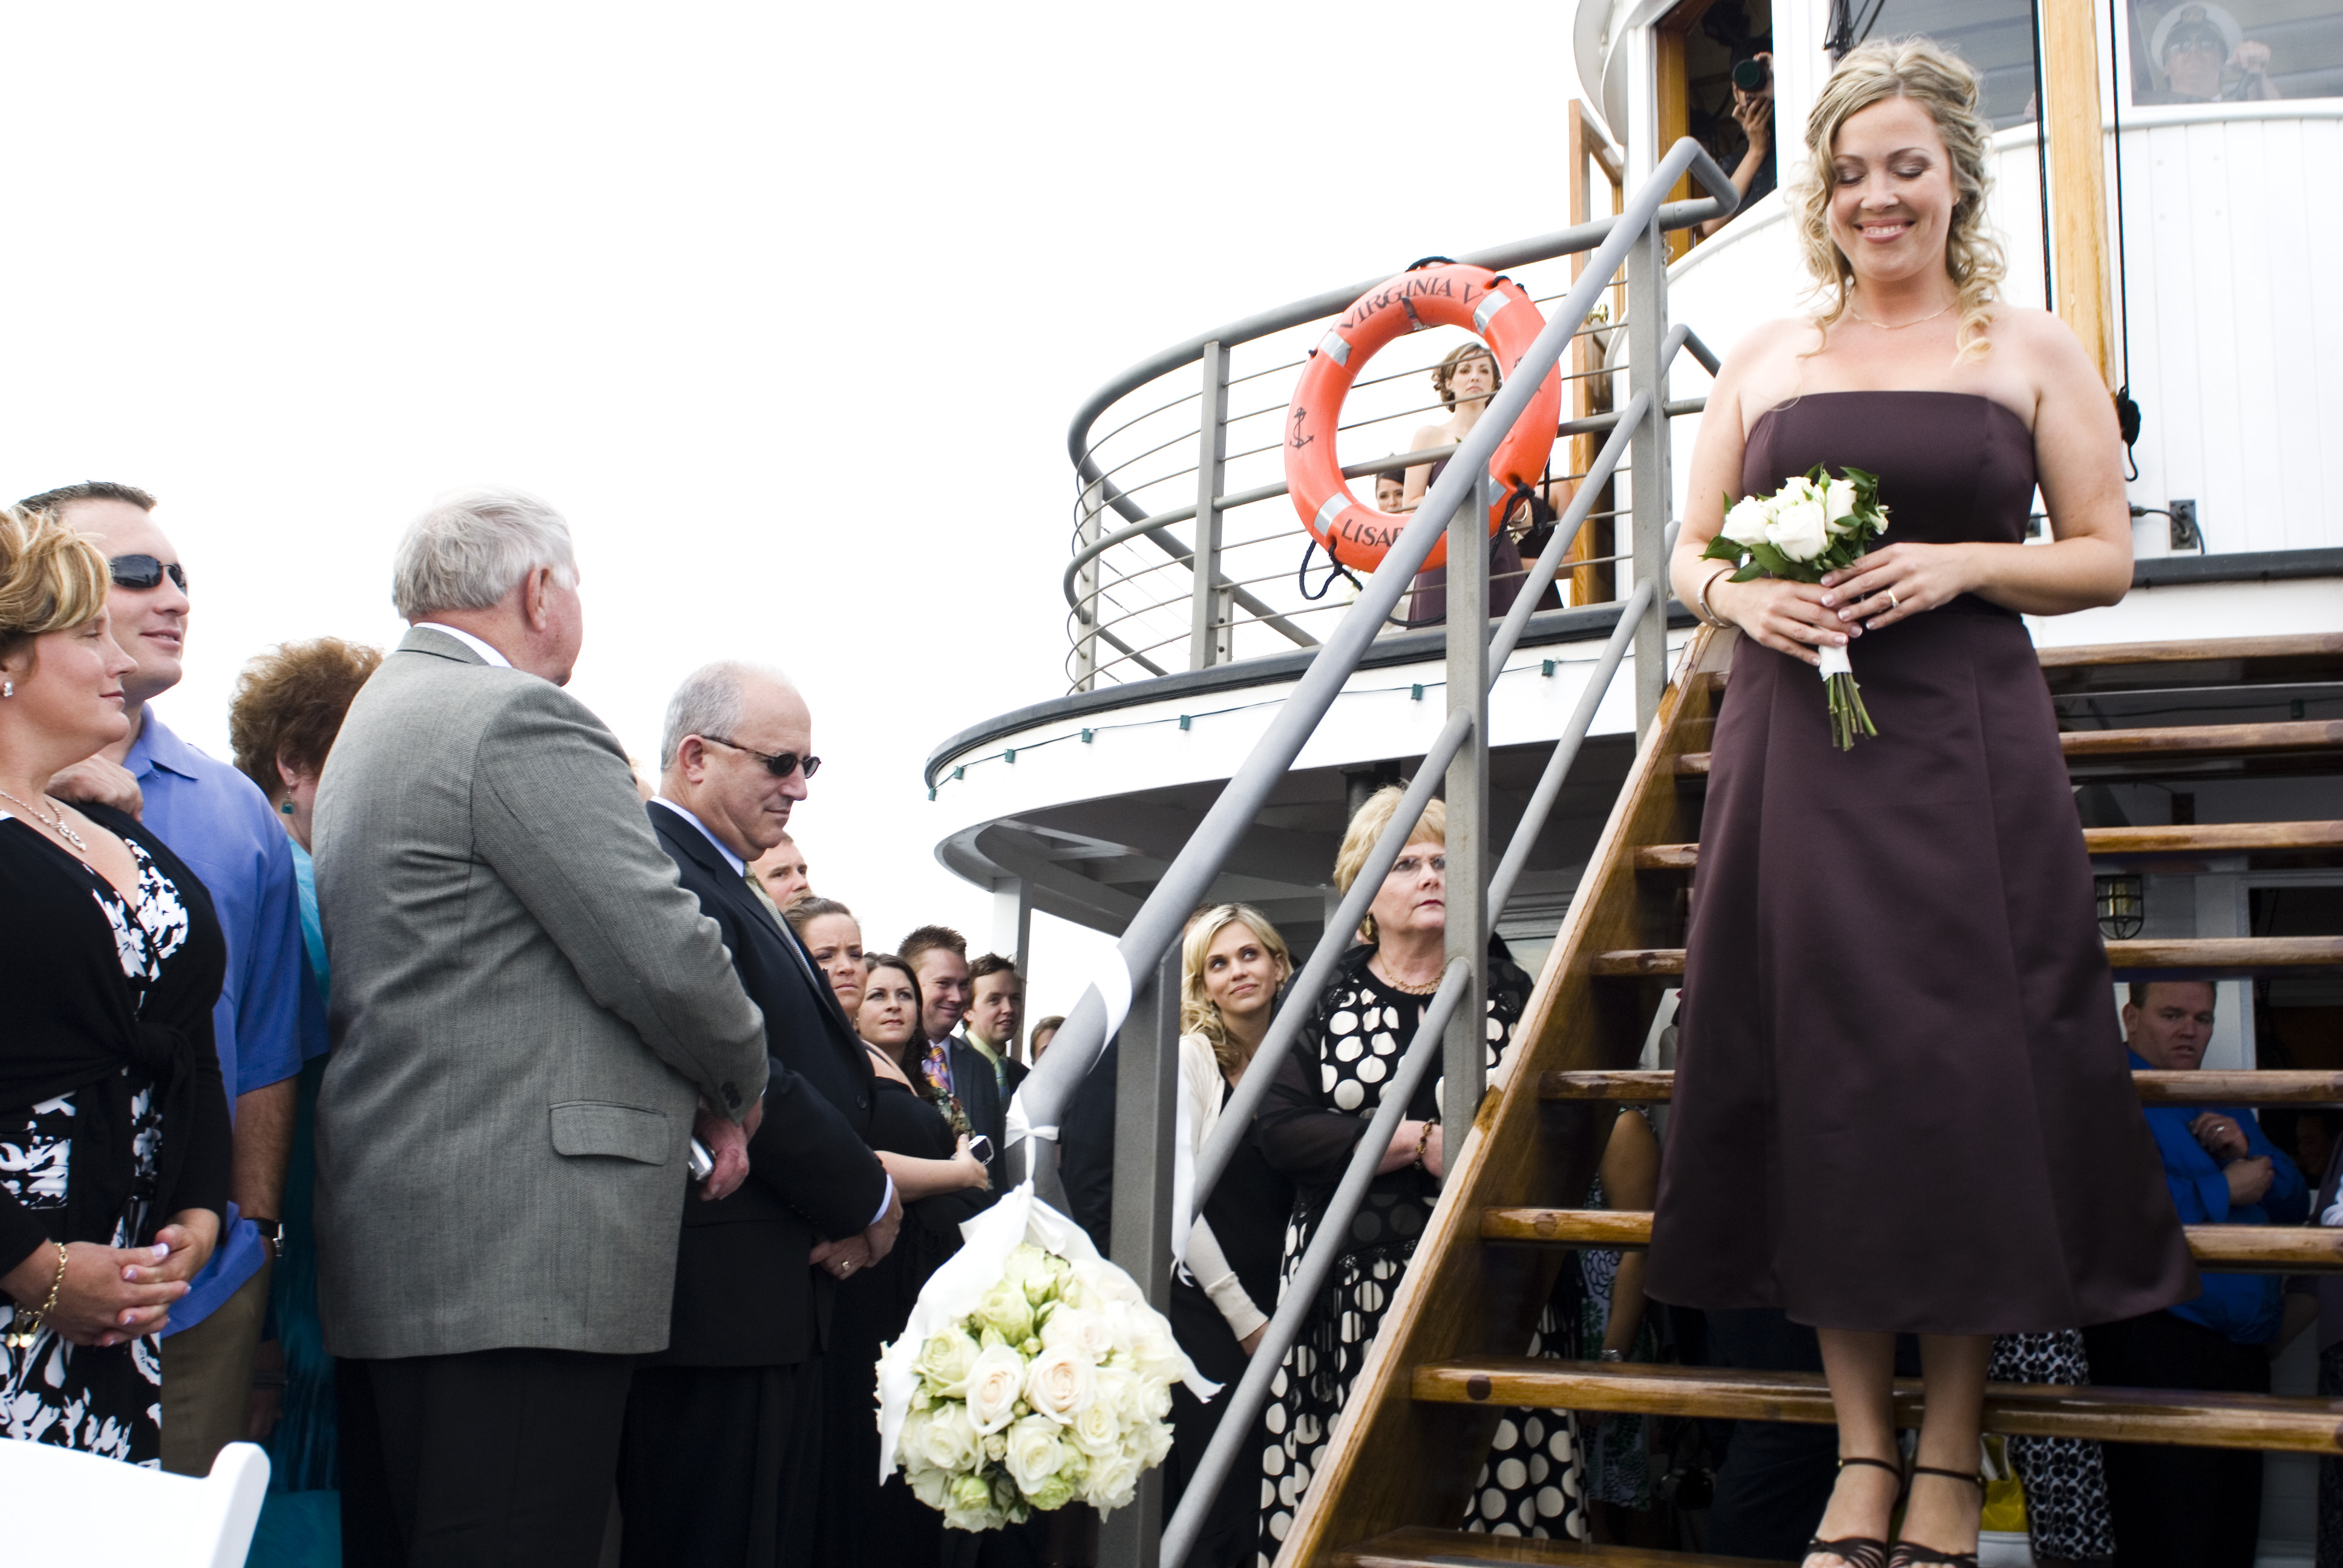 Ceremony, Flowers & Decor, Destinations, Cruise, Bridesmaid, Procession, Boat, Ship, Virginia v steamship